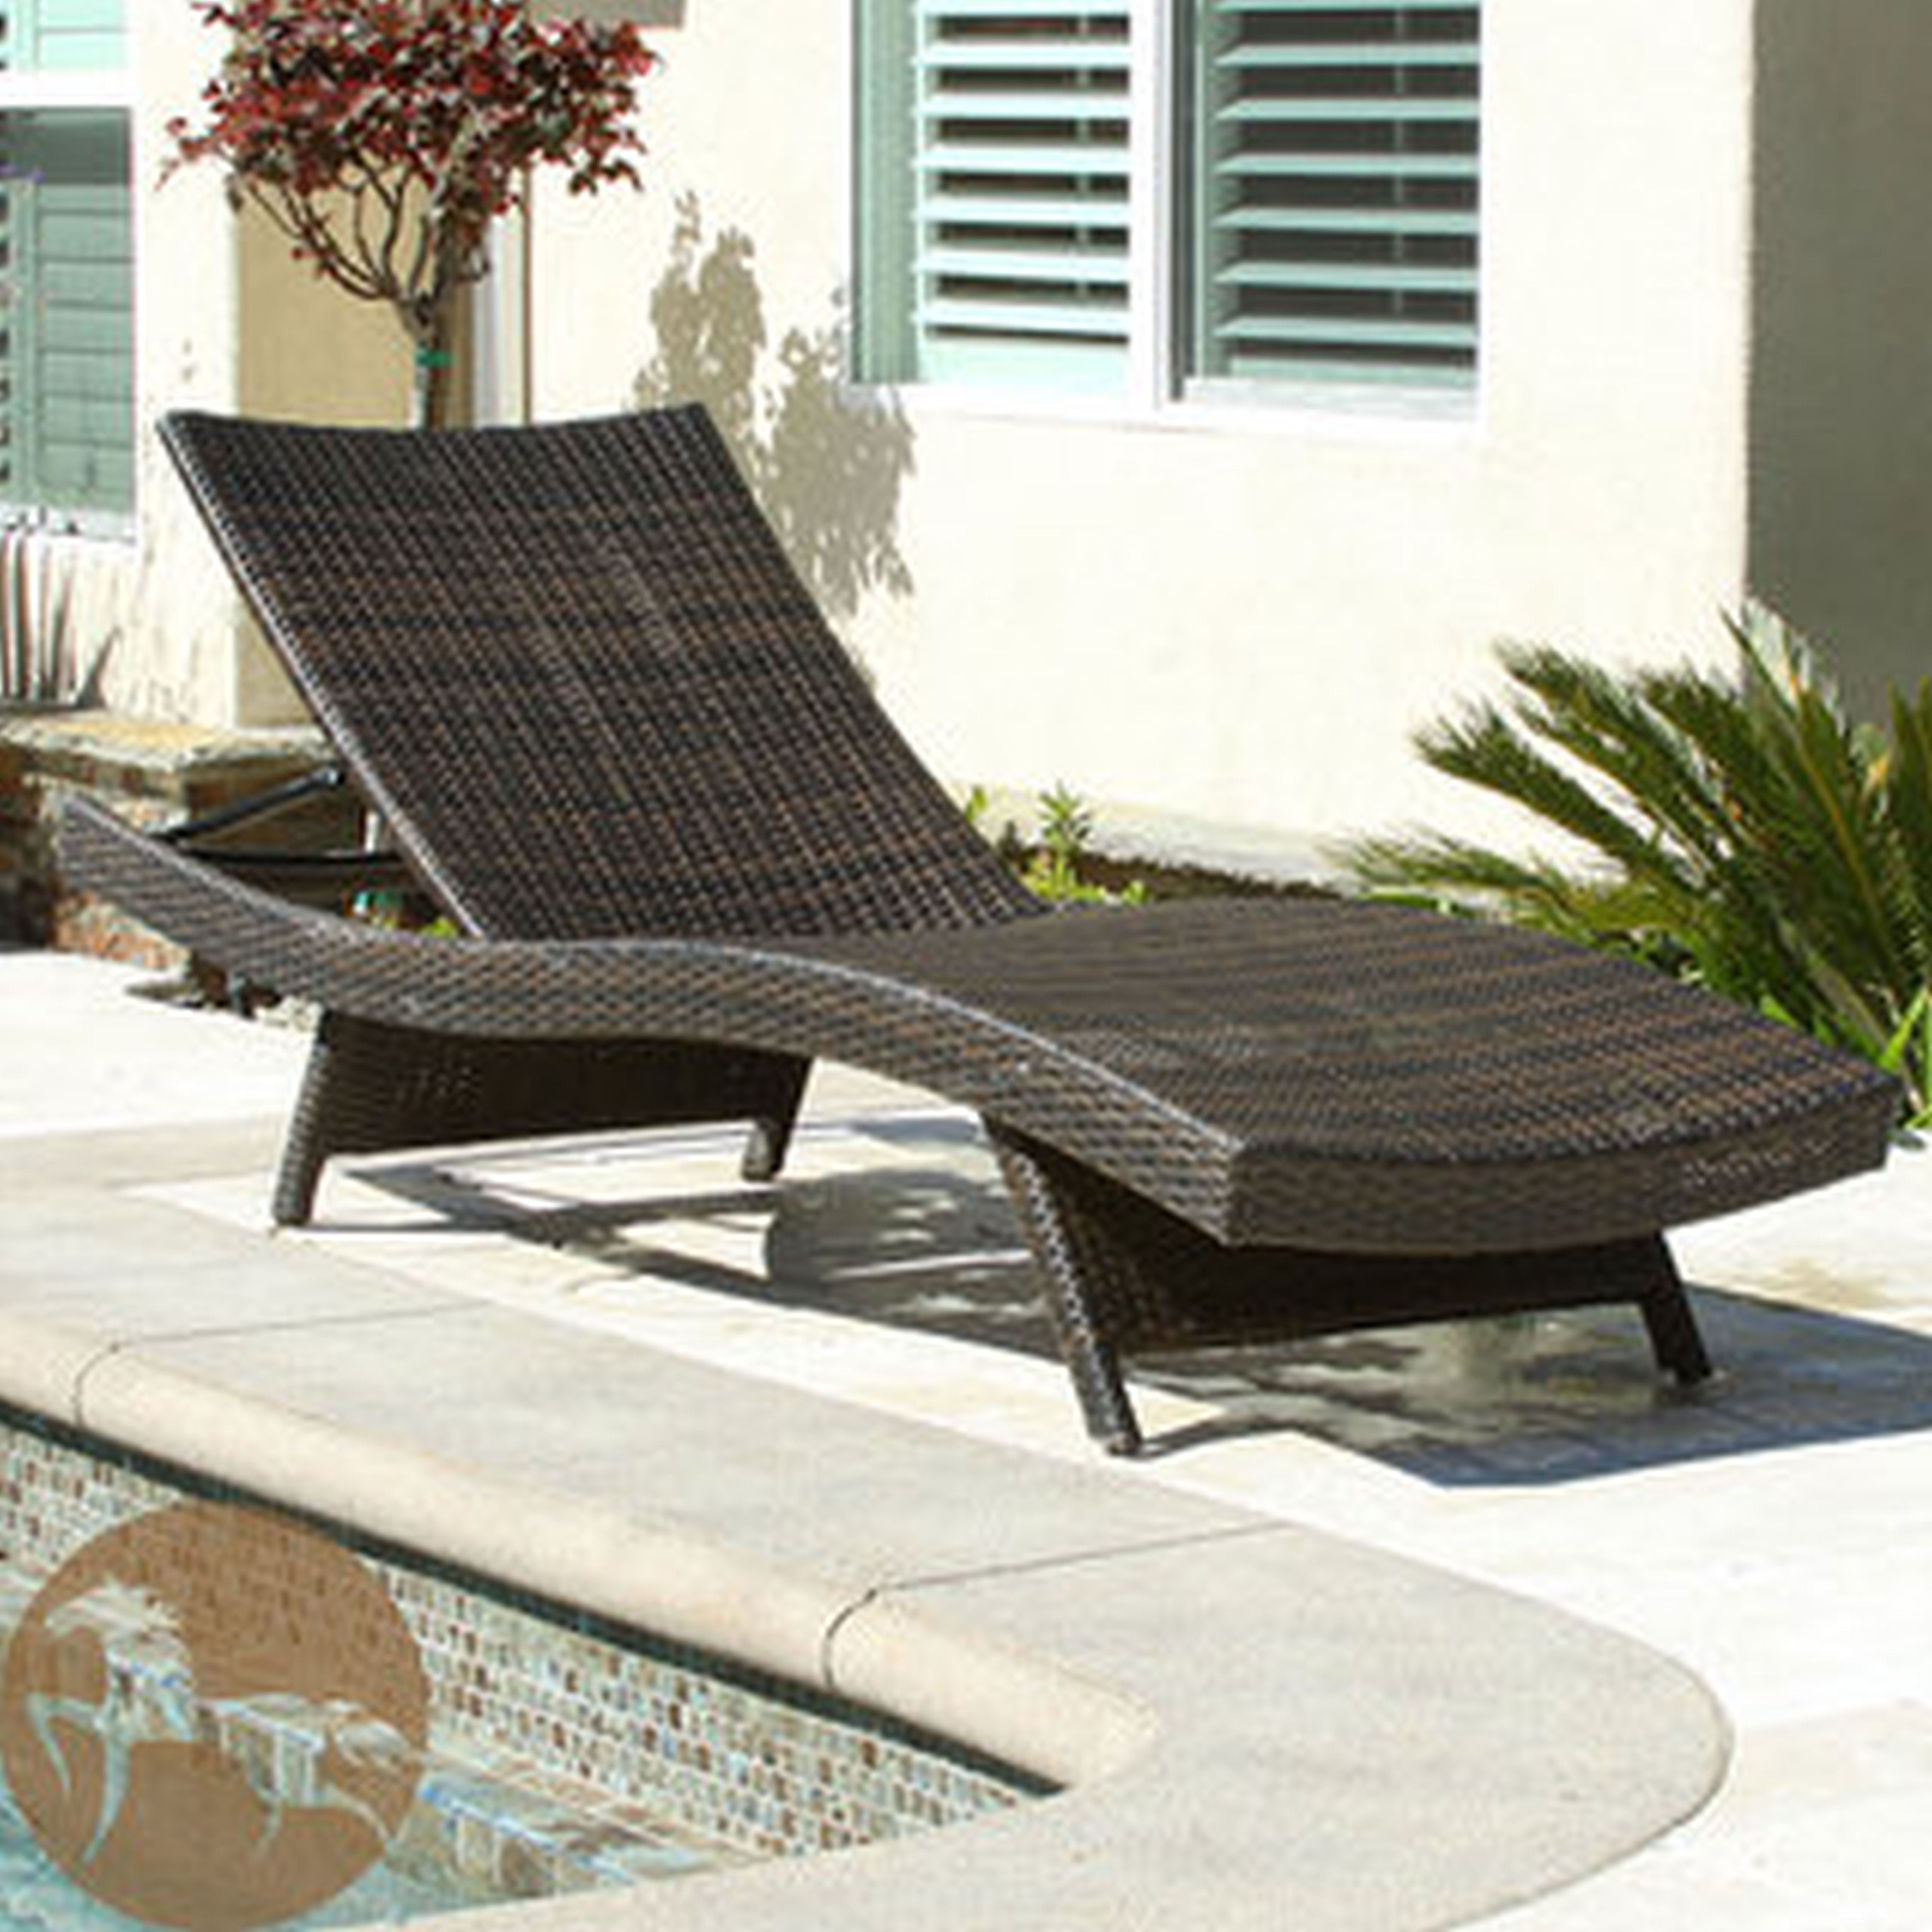 Most Recent Target Chaise Lounges Regarding Outdoor : Target Lounge Chairs Commercial Chaise Lounge Chairs (View 7 of 15)